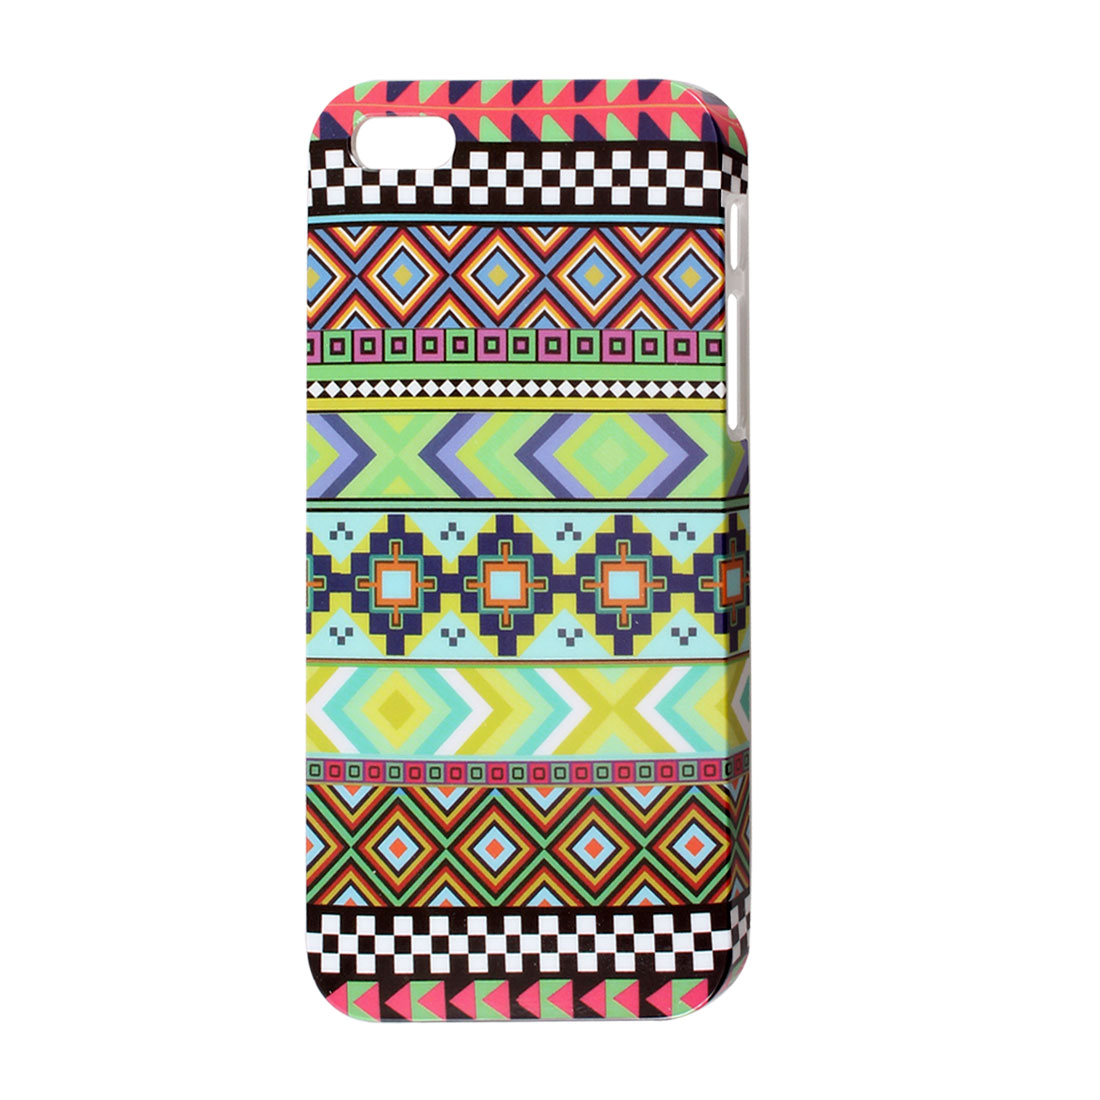 Ethnologic Rhombic Plaid Multicolor IMD Hard Back Case Cover for iPhone 5 5G